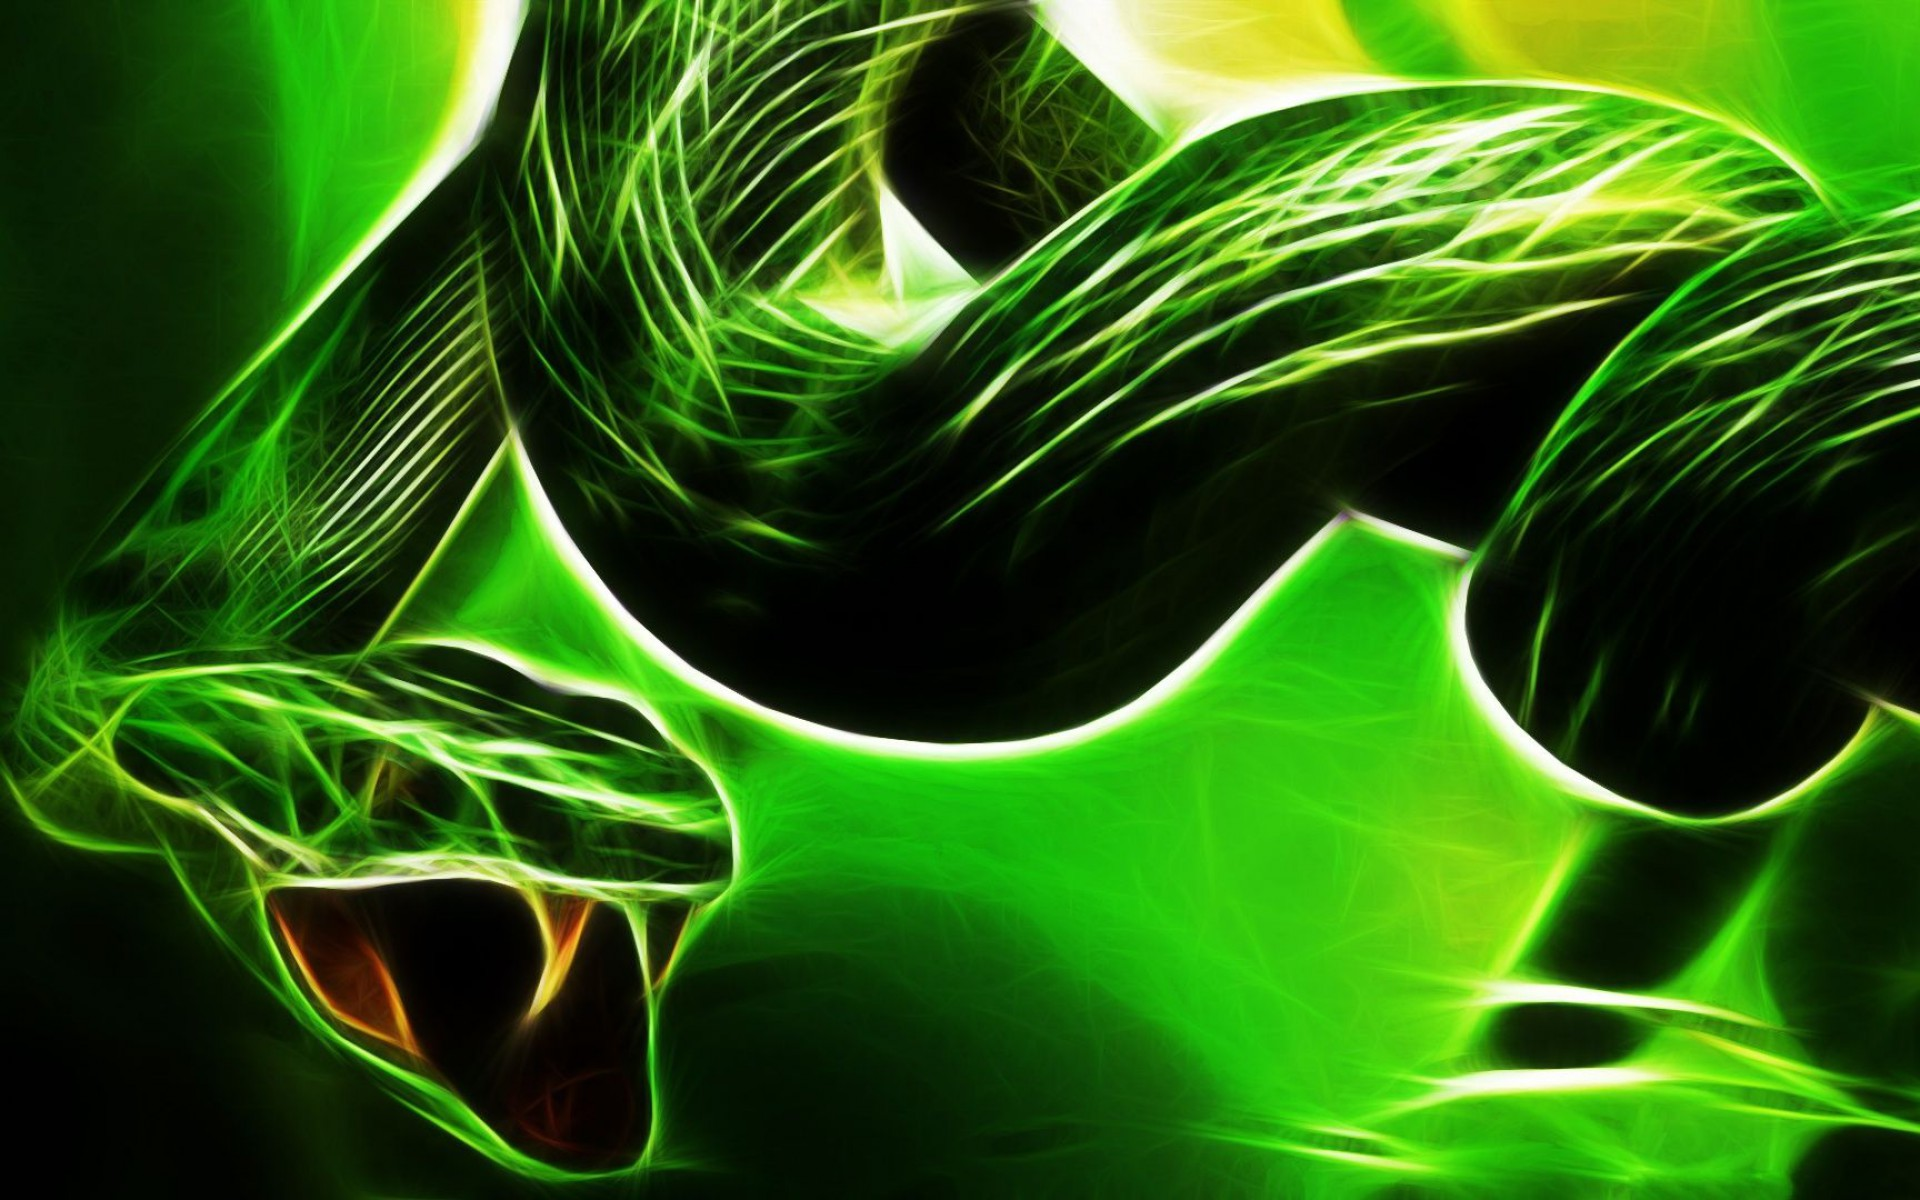 the snake wallpapers - photo #33